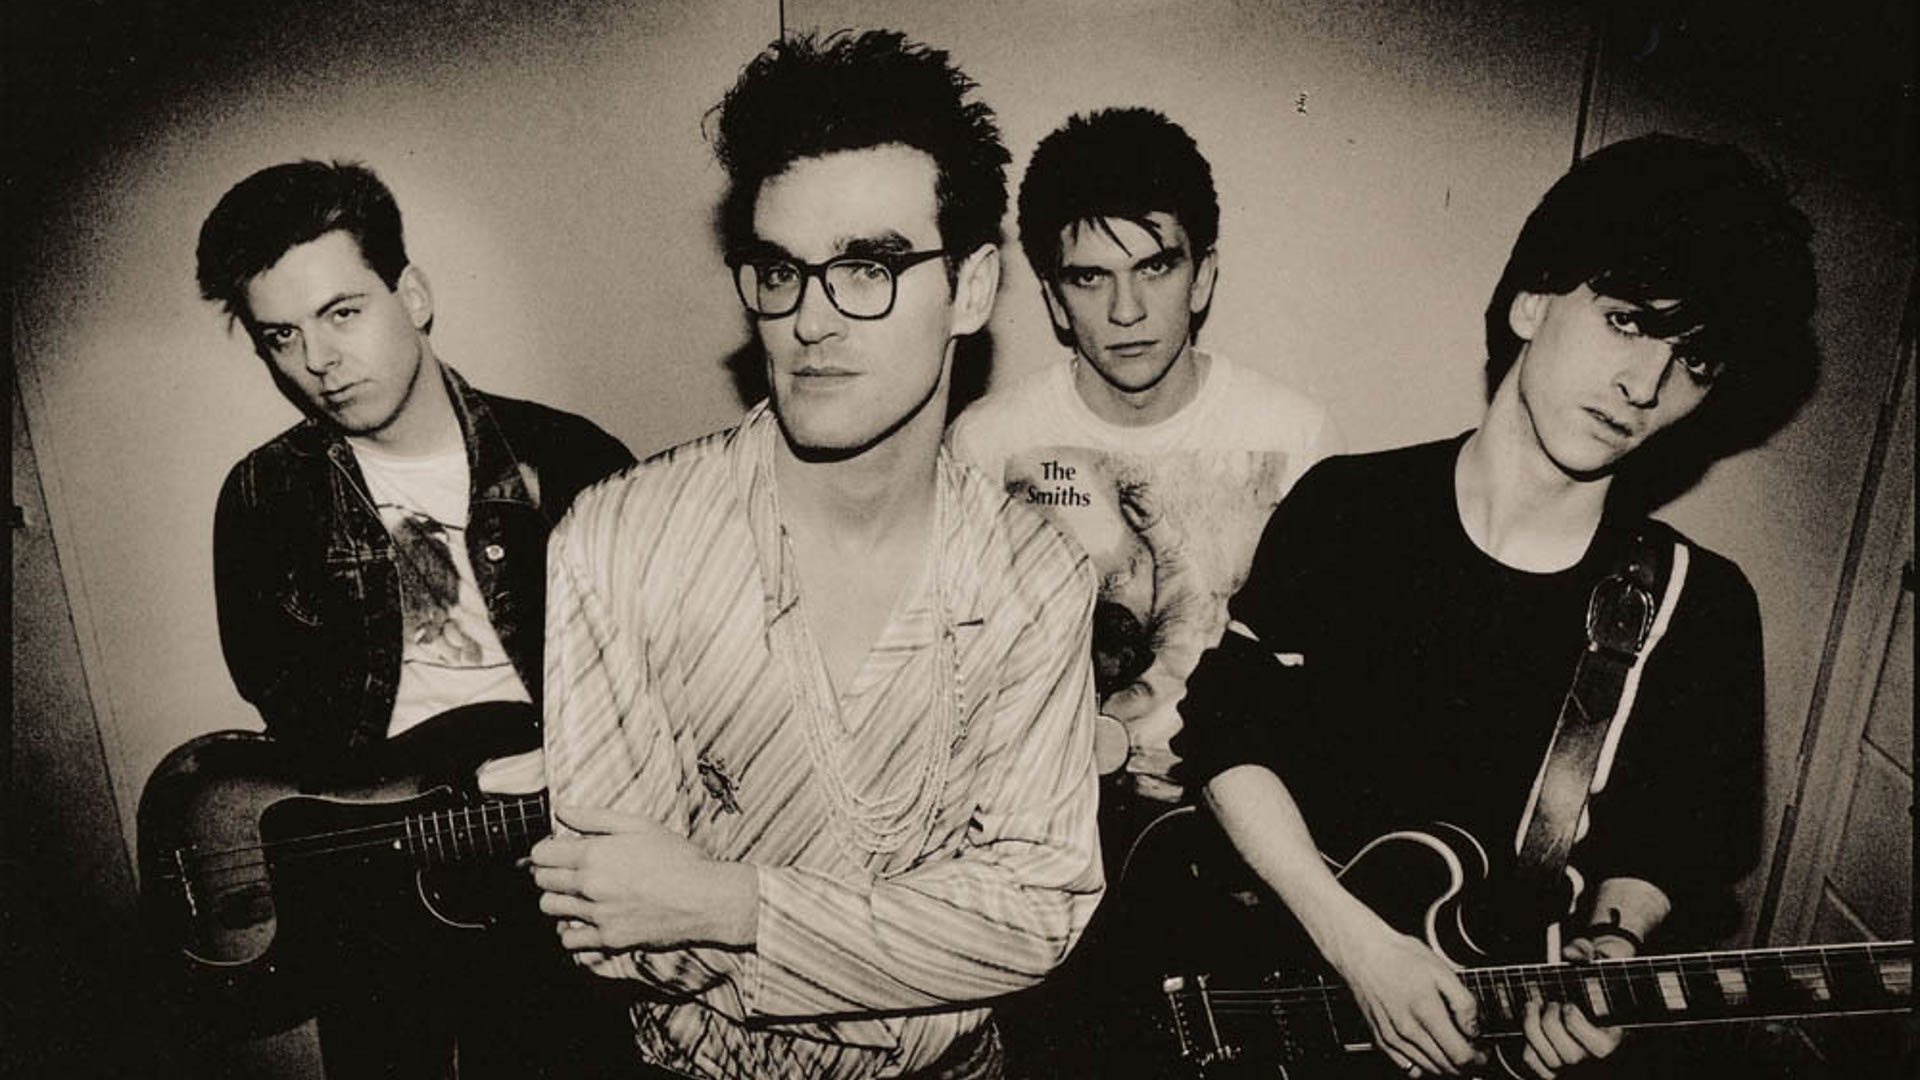 635897215741026780-955178337_the smiths